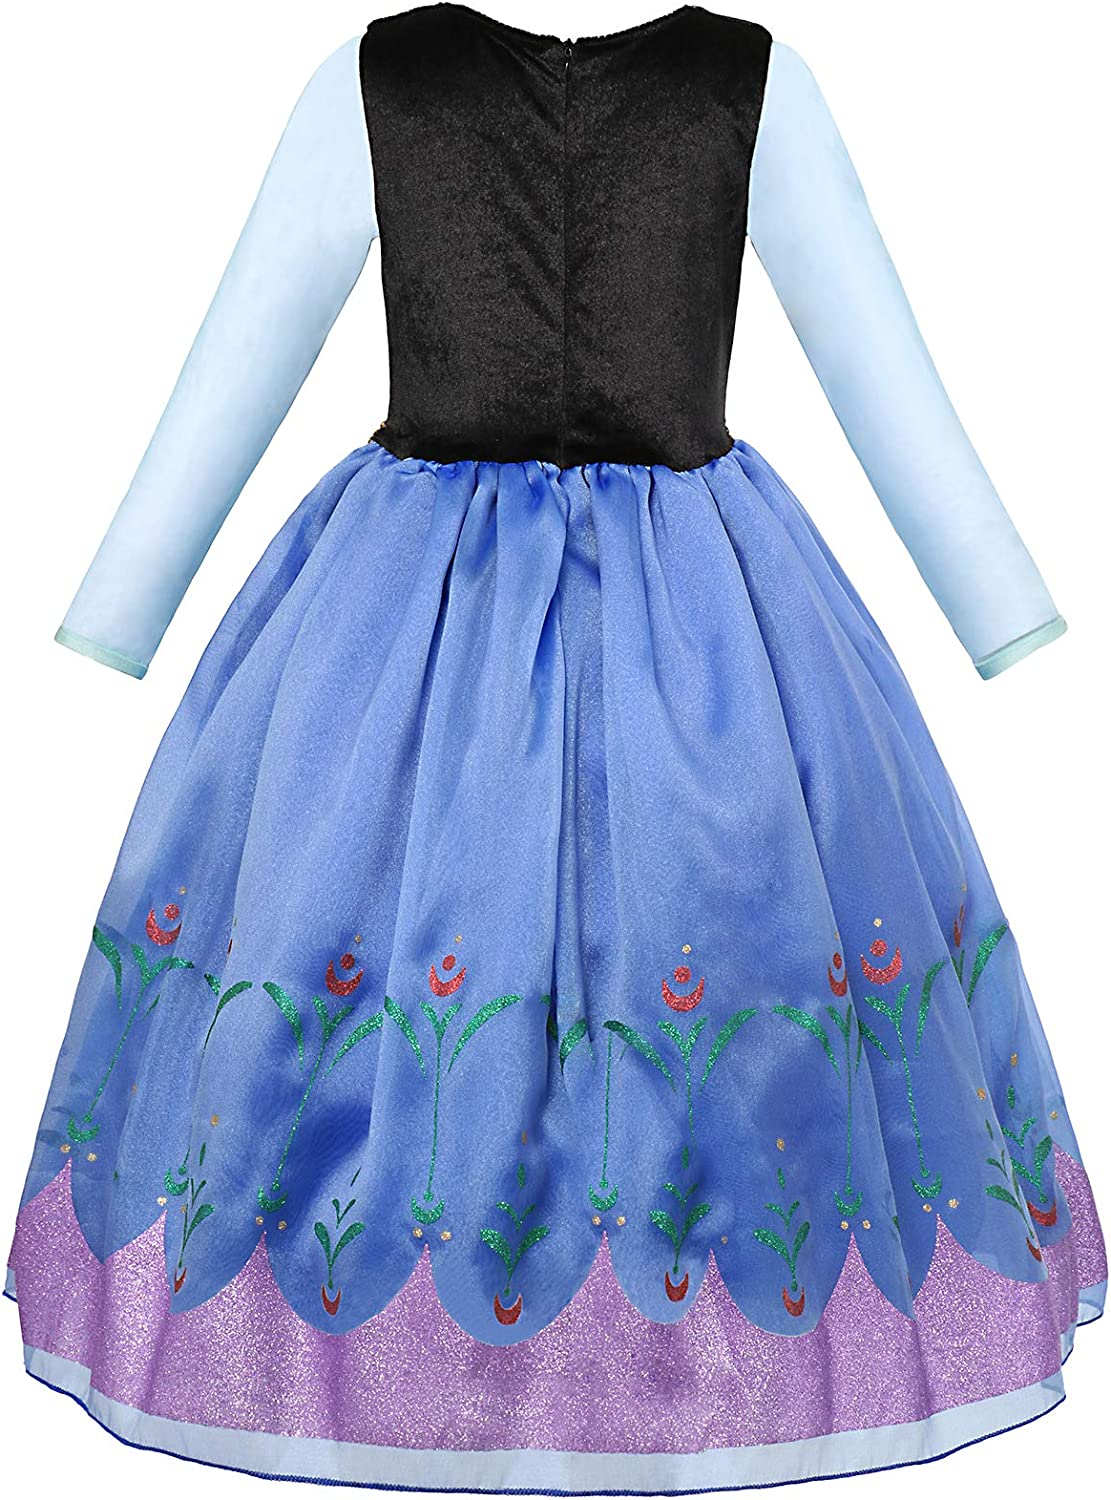 aibeiboutique Princess Costume Halloween Cosplay Deluxe Dress Up for Girls